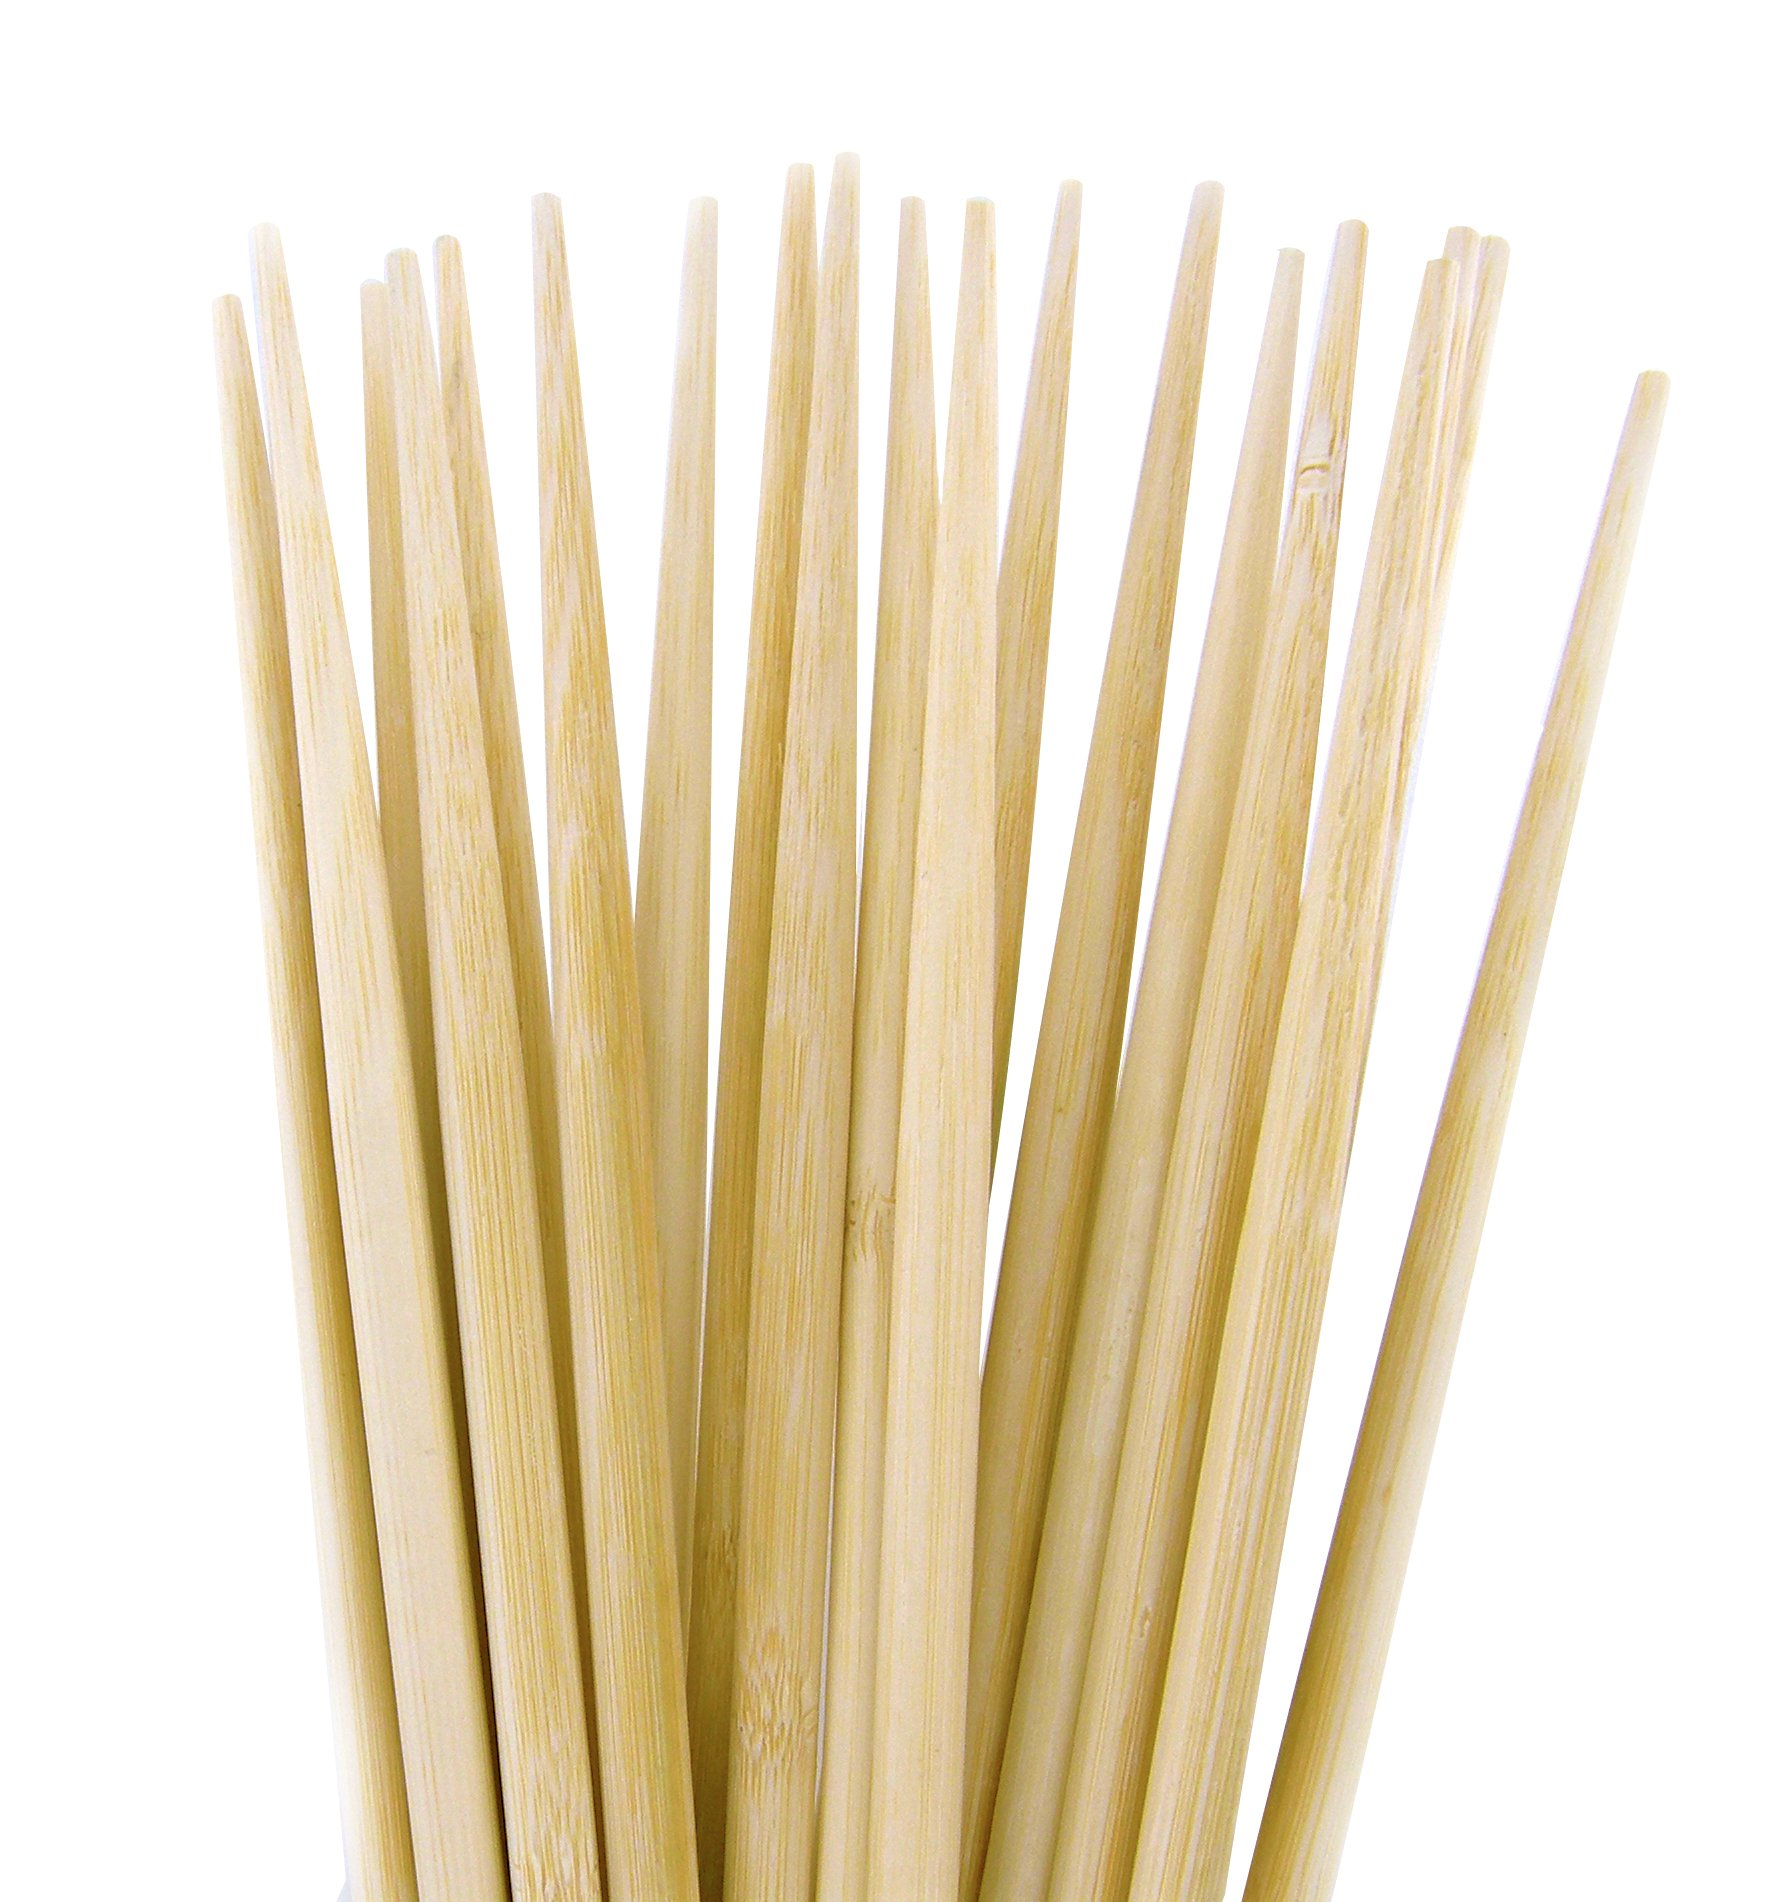 10 Pairs 18 Inches Long Natural Eco Friendly Bamboo Chopsticks Strong and Light for Noodle Flying, Long cooking Bamboo Sticks and Chopsticks for Cooking, Hot pot Chopsticks